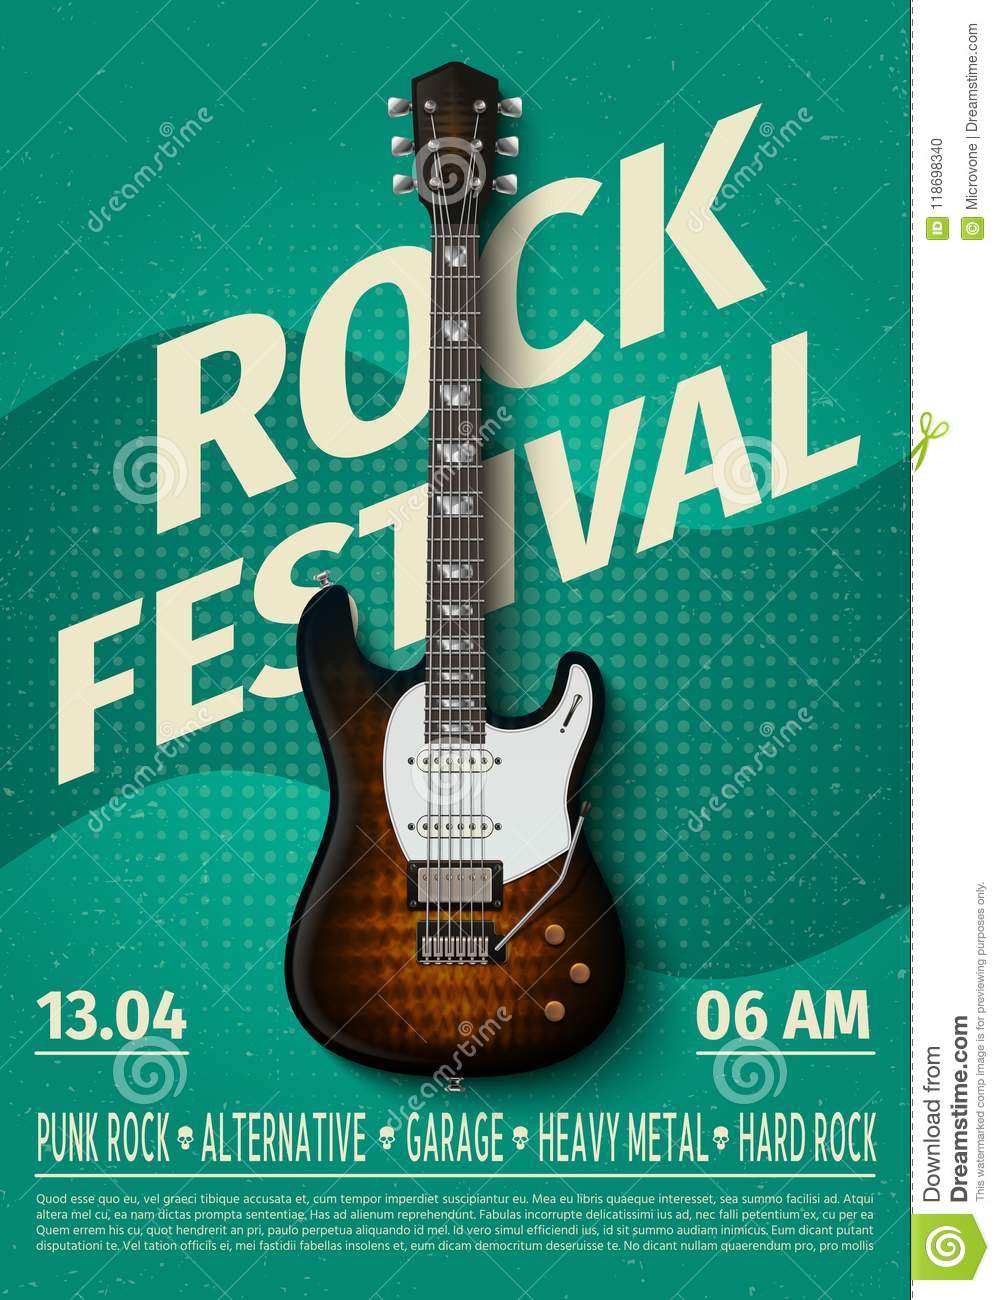 Vintage Rock Festival Flyer With Electric Guitar Retro Music